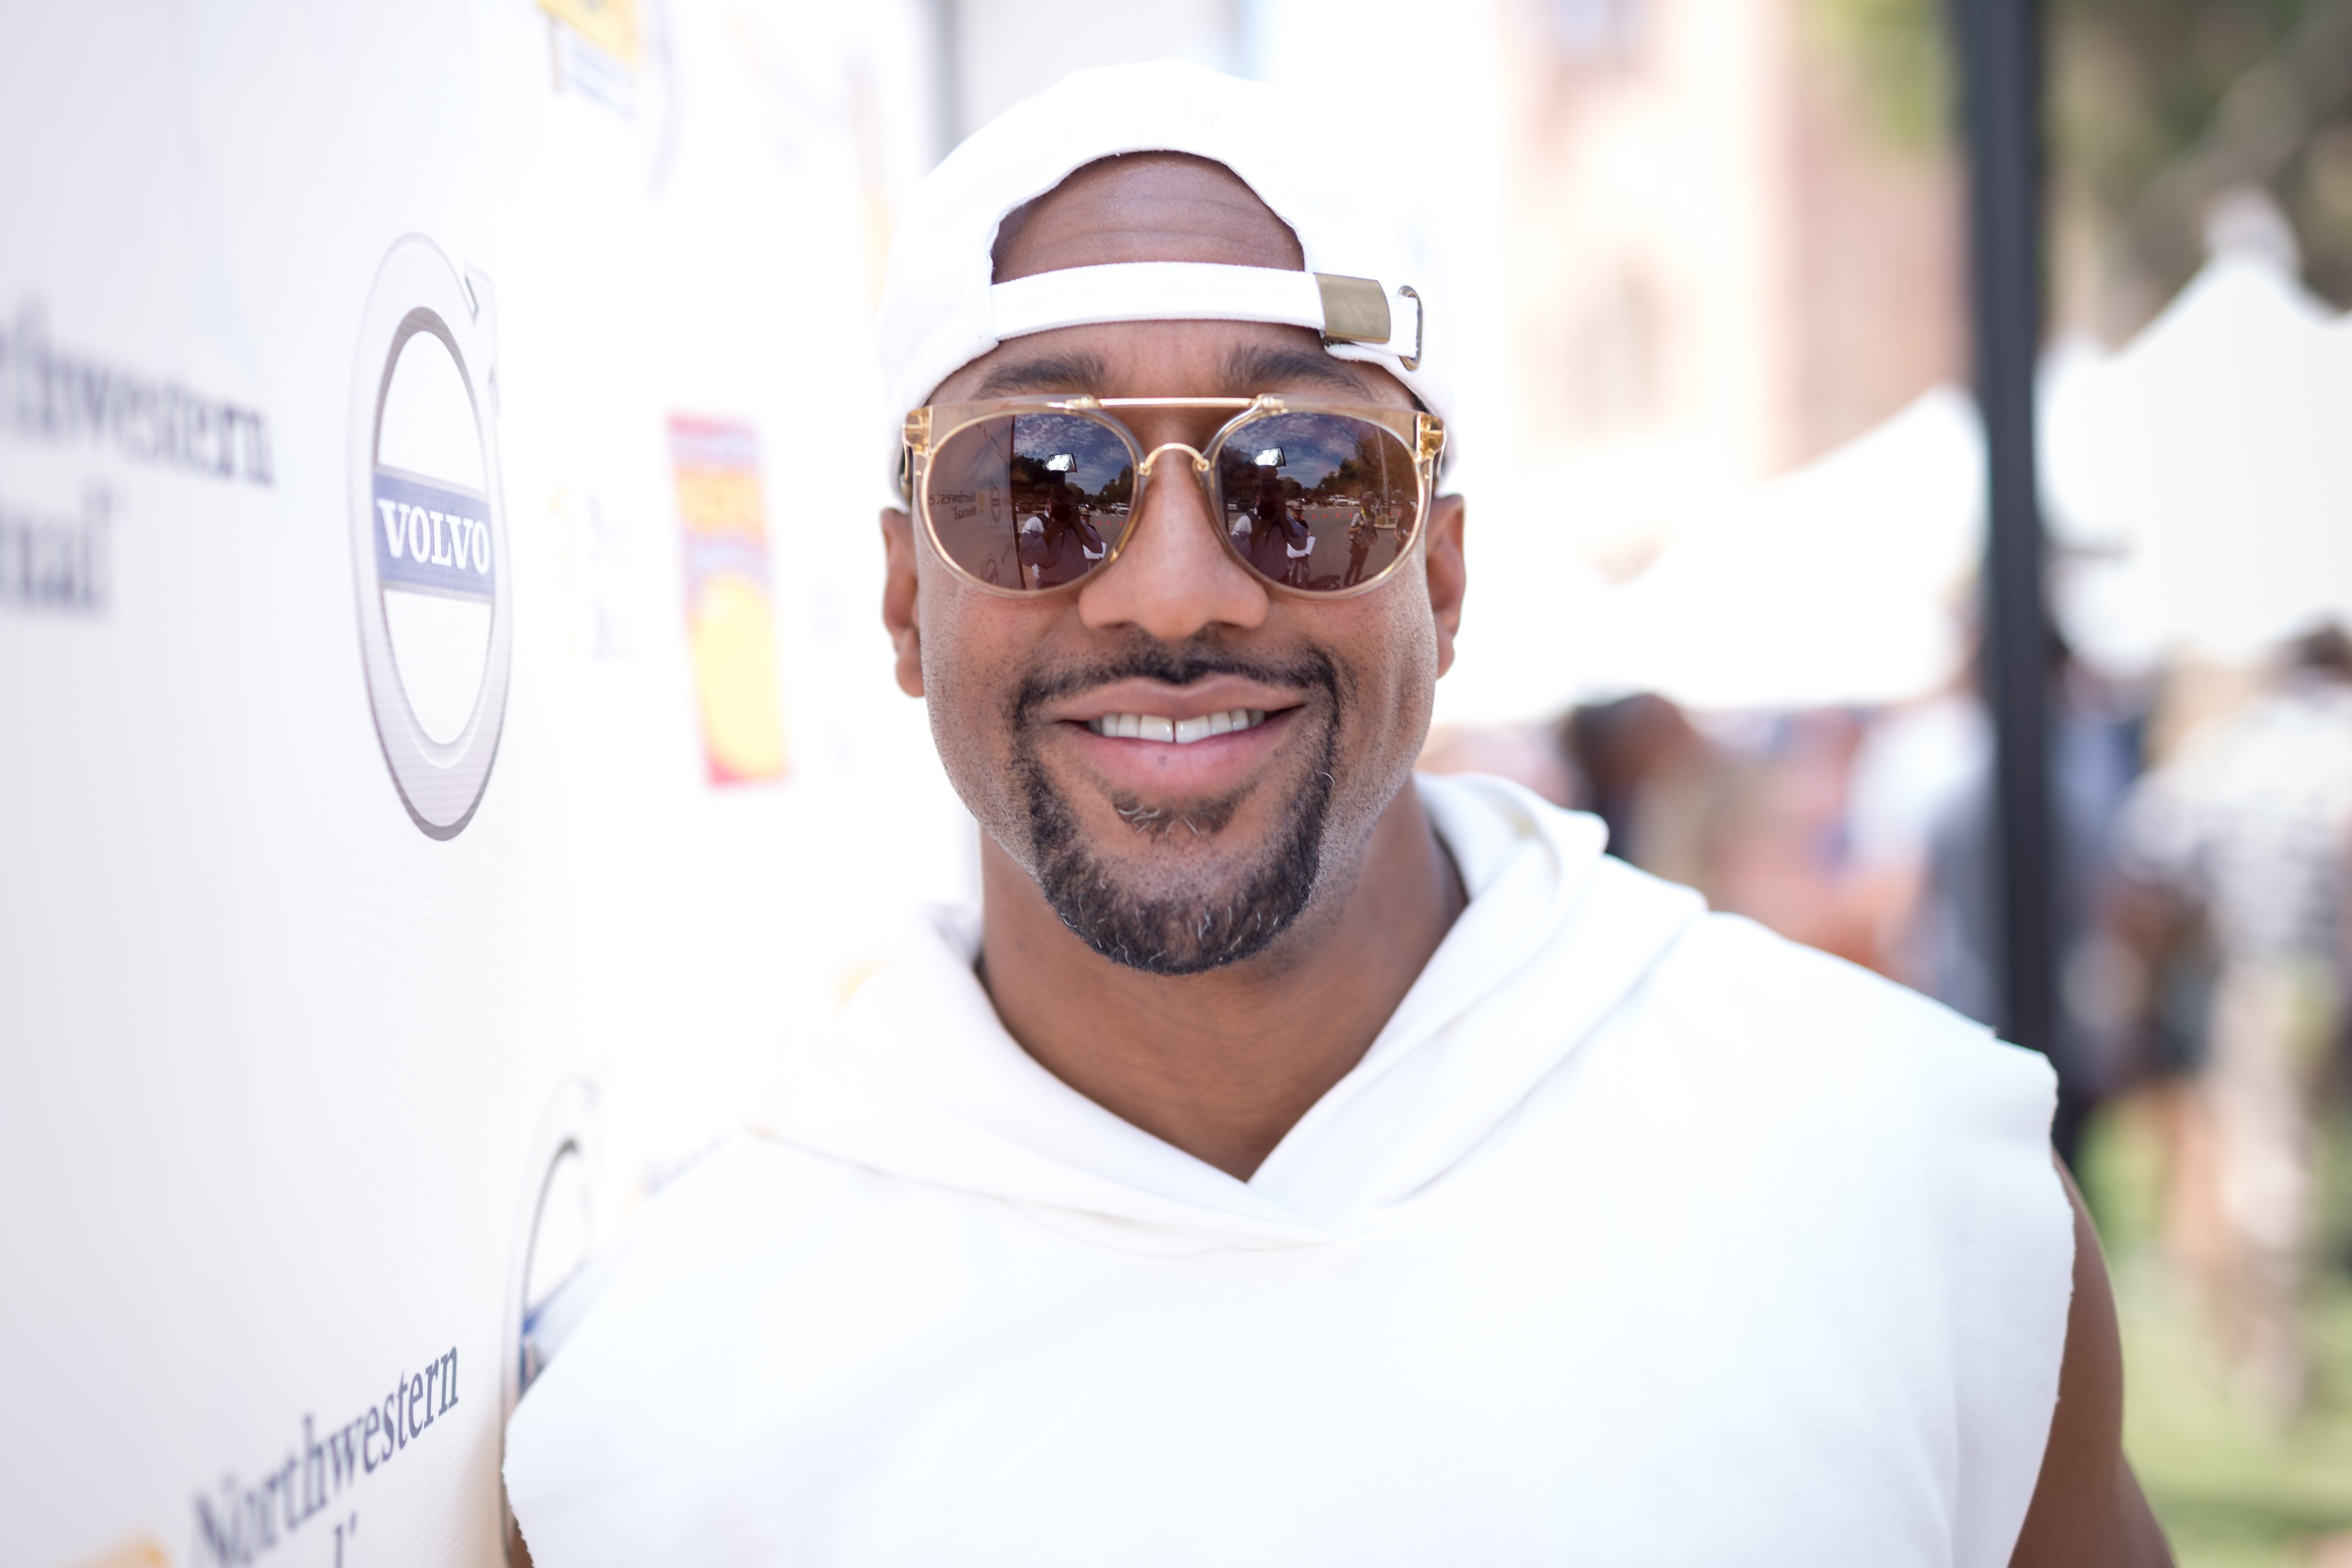 Jaleel White at the 8th Annual L.A. Loves Alex's Lemonade at UCLA Royce Quad on September 9, 2017 in Los Angeles, California.  Source: Getty Images